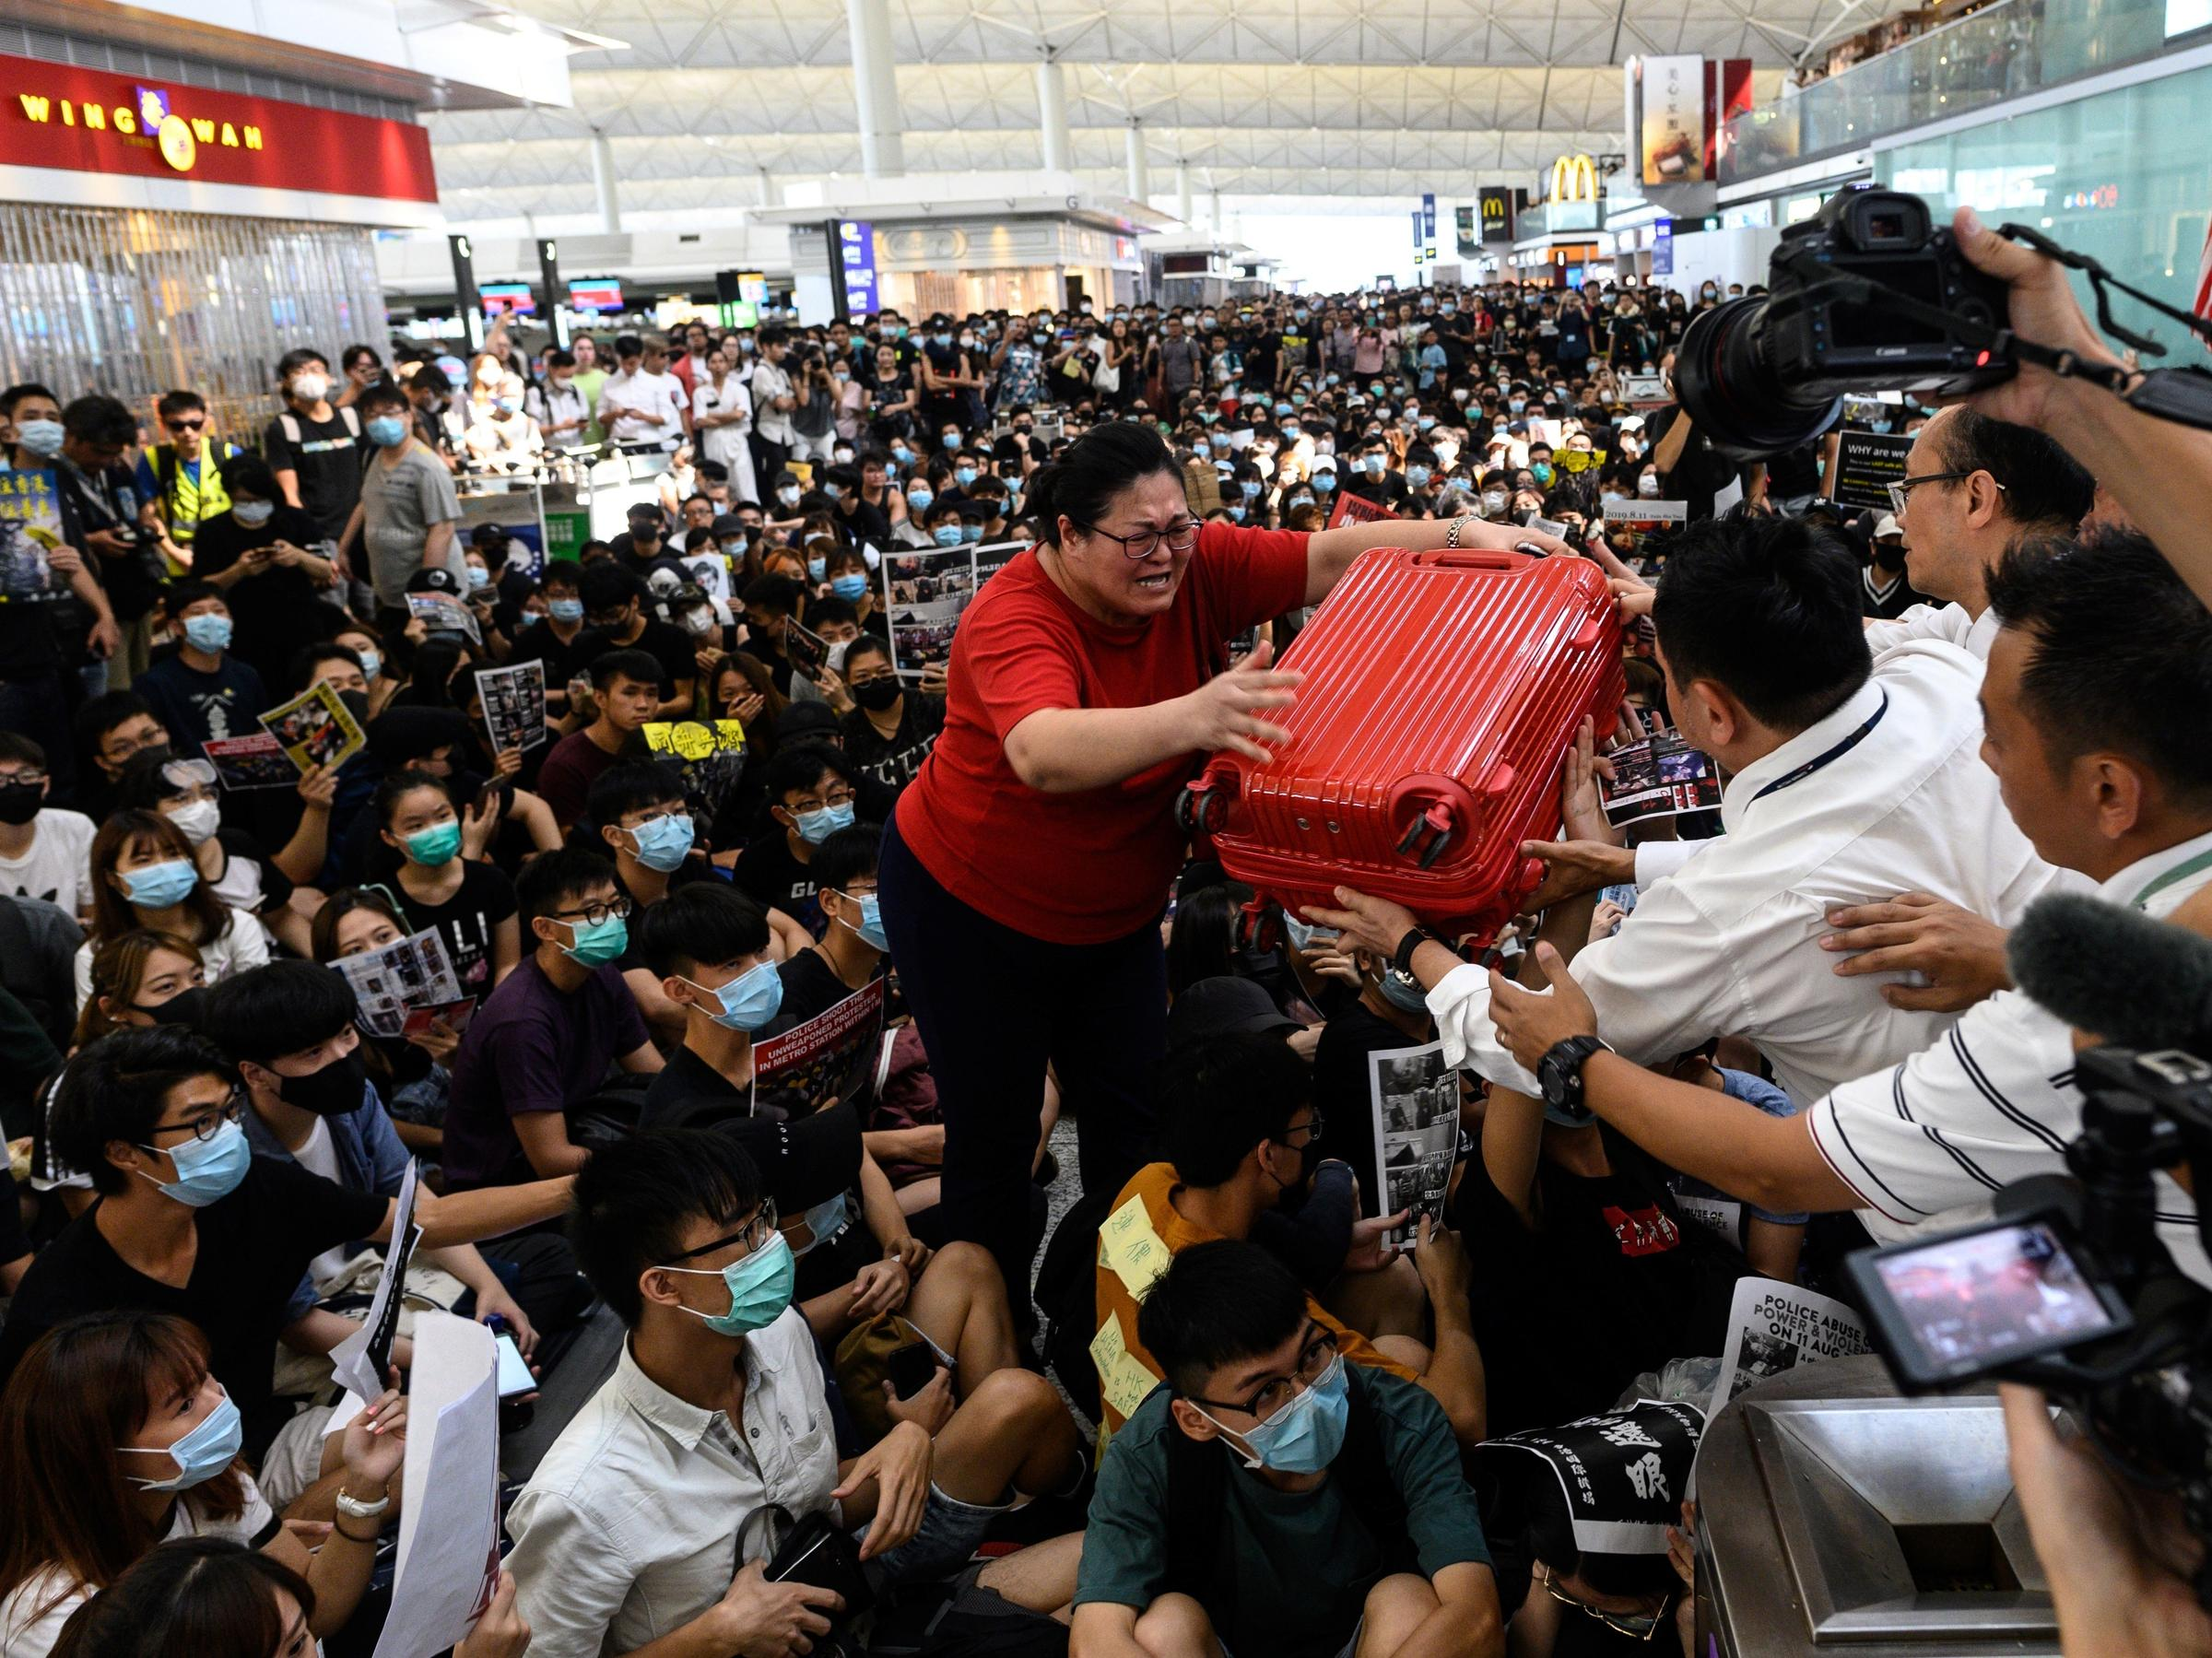 Protesters Return To Hong Kong's Airport, Causing Flight